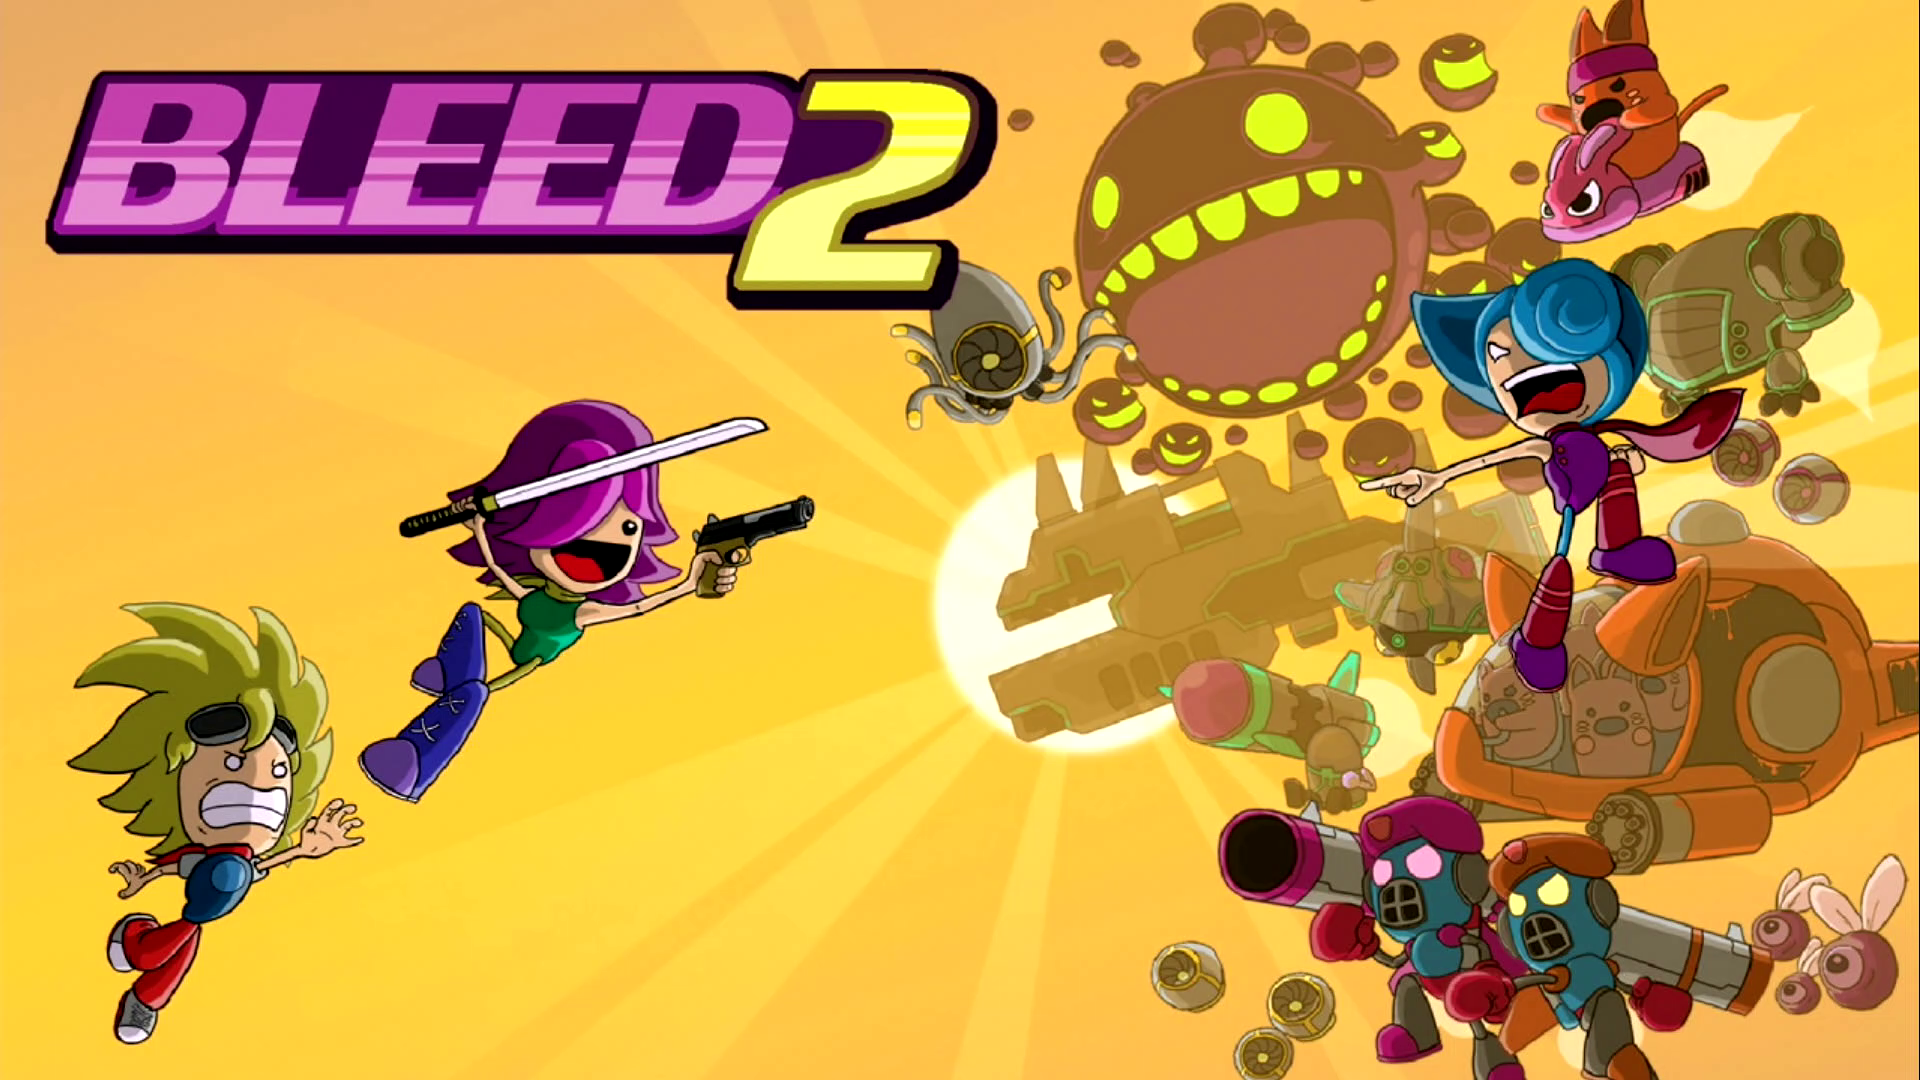 Bleed 2 (Steam Key Region Free)